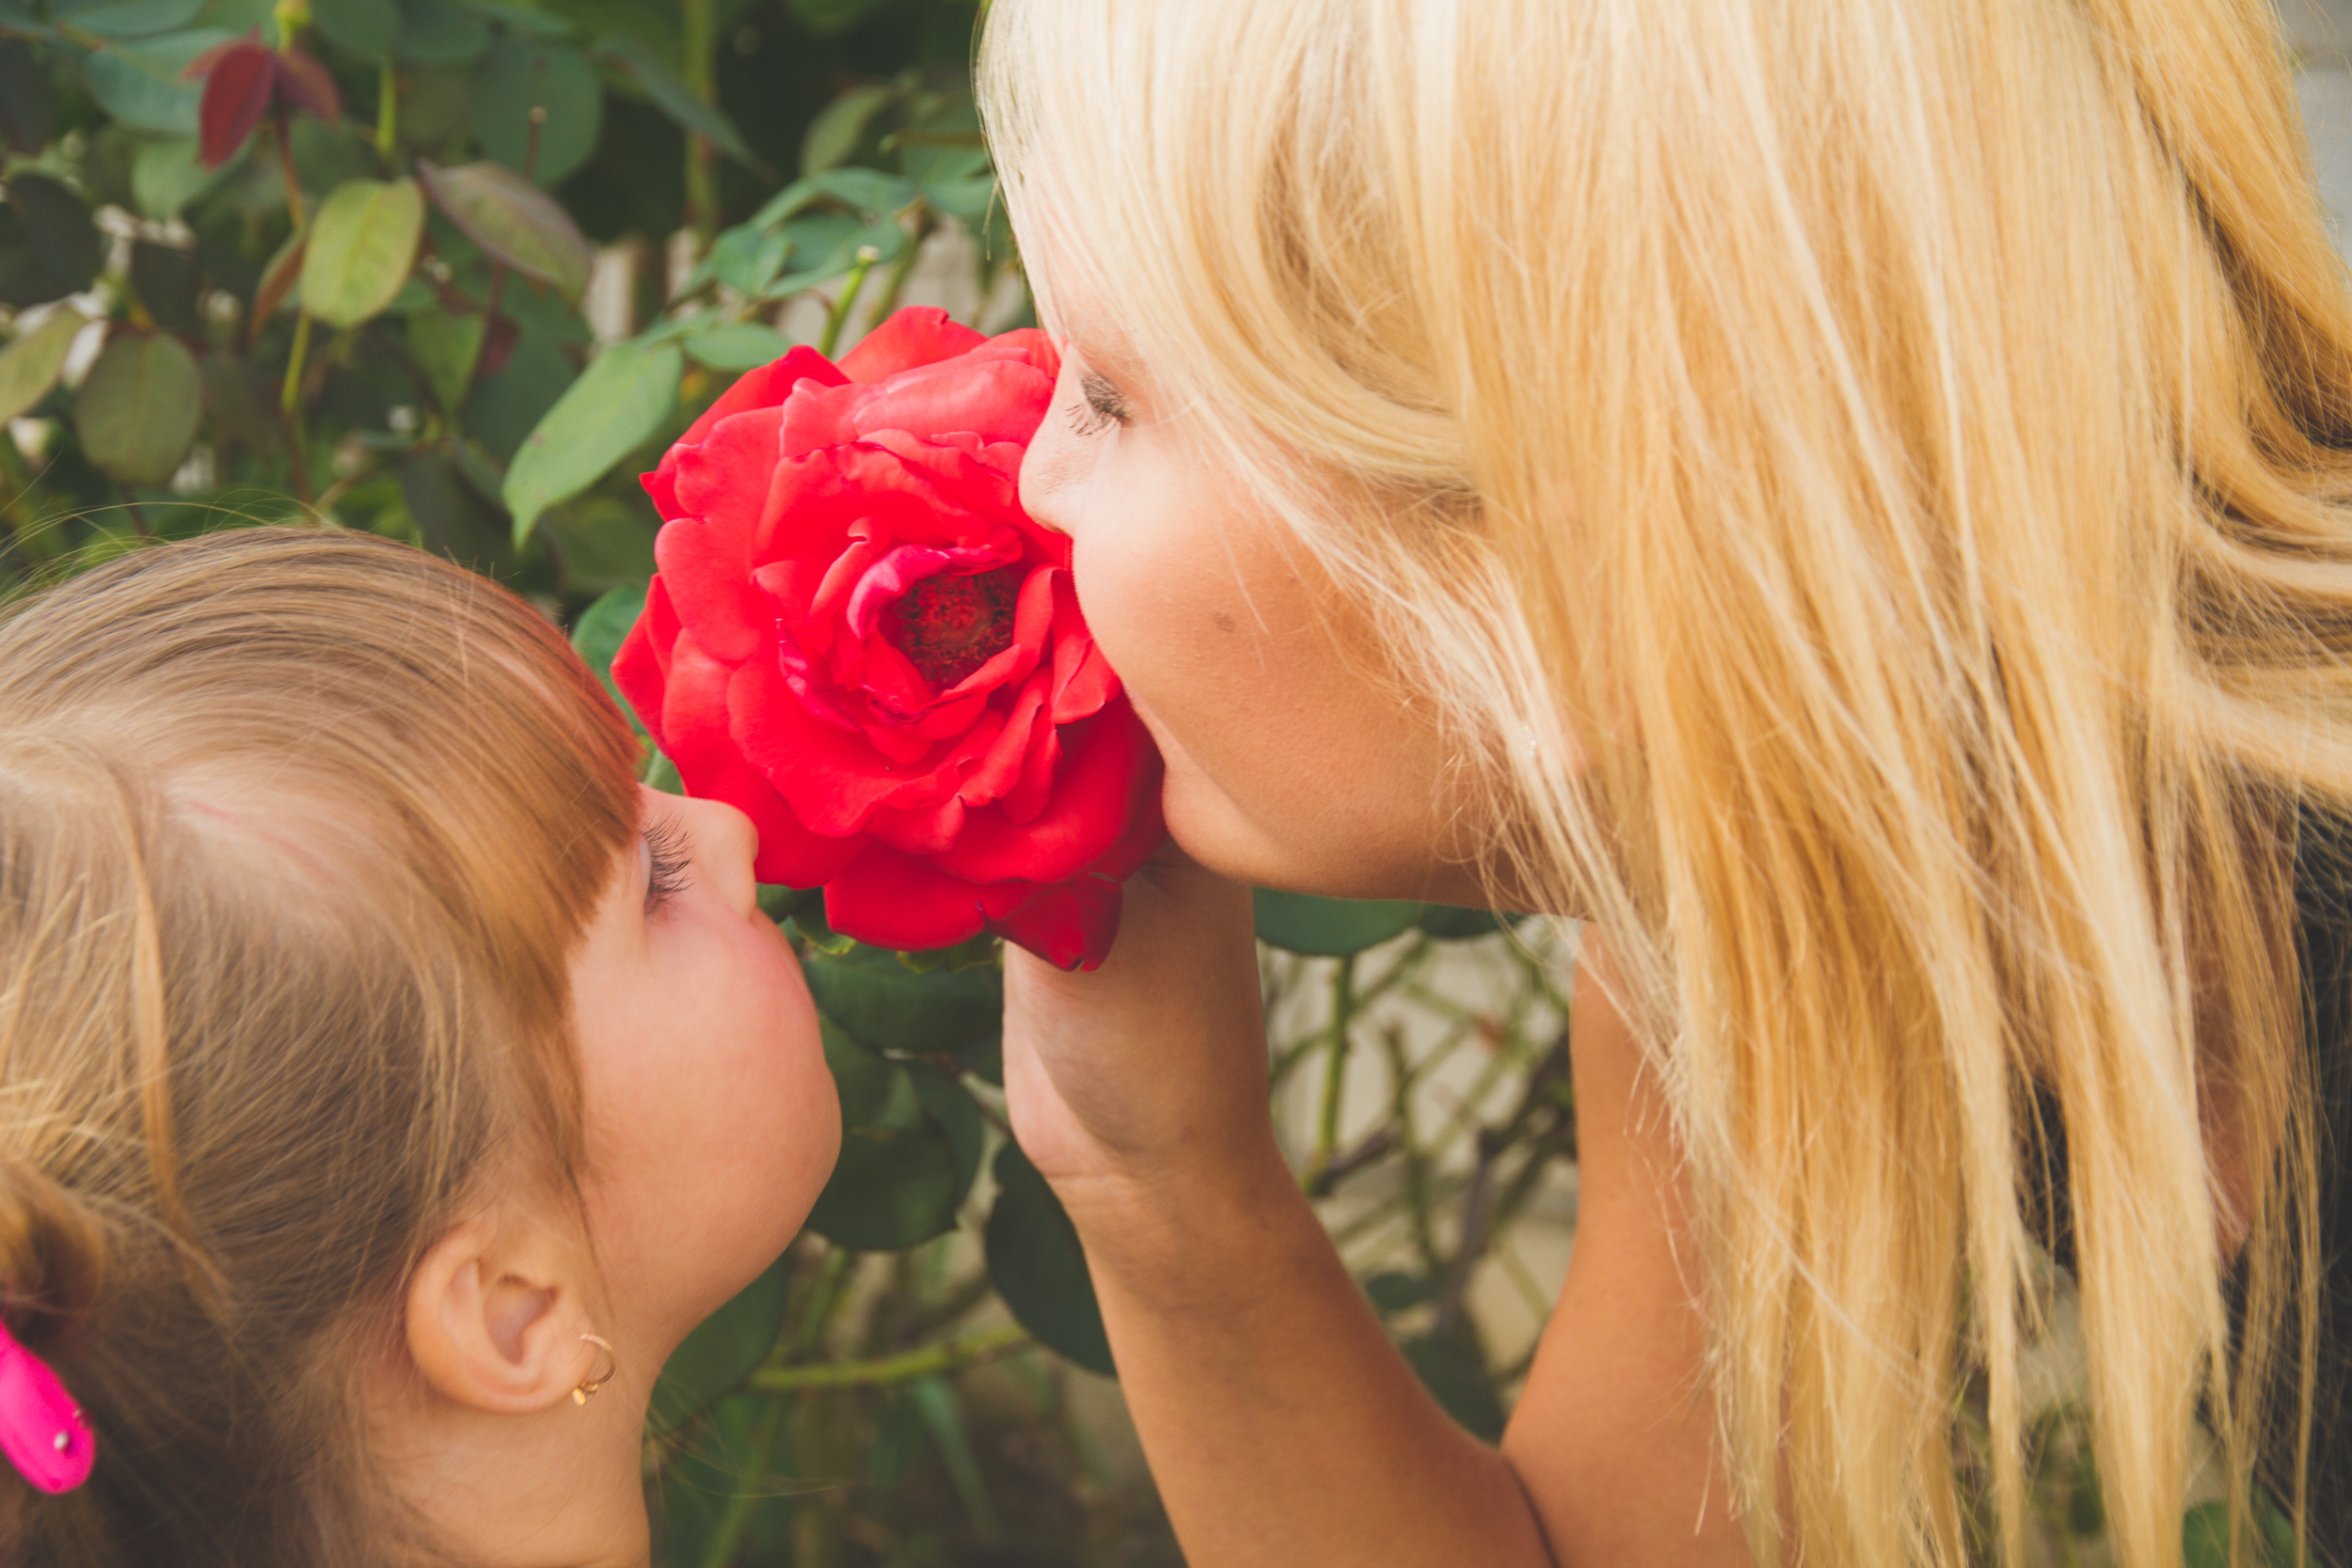 Time to appreciate family and nature blooming